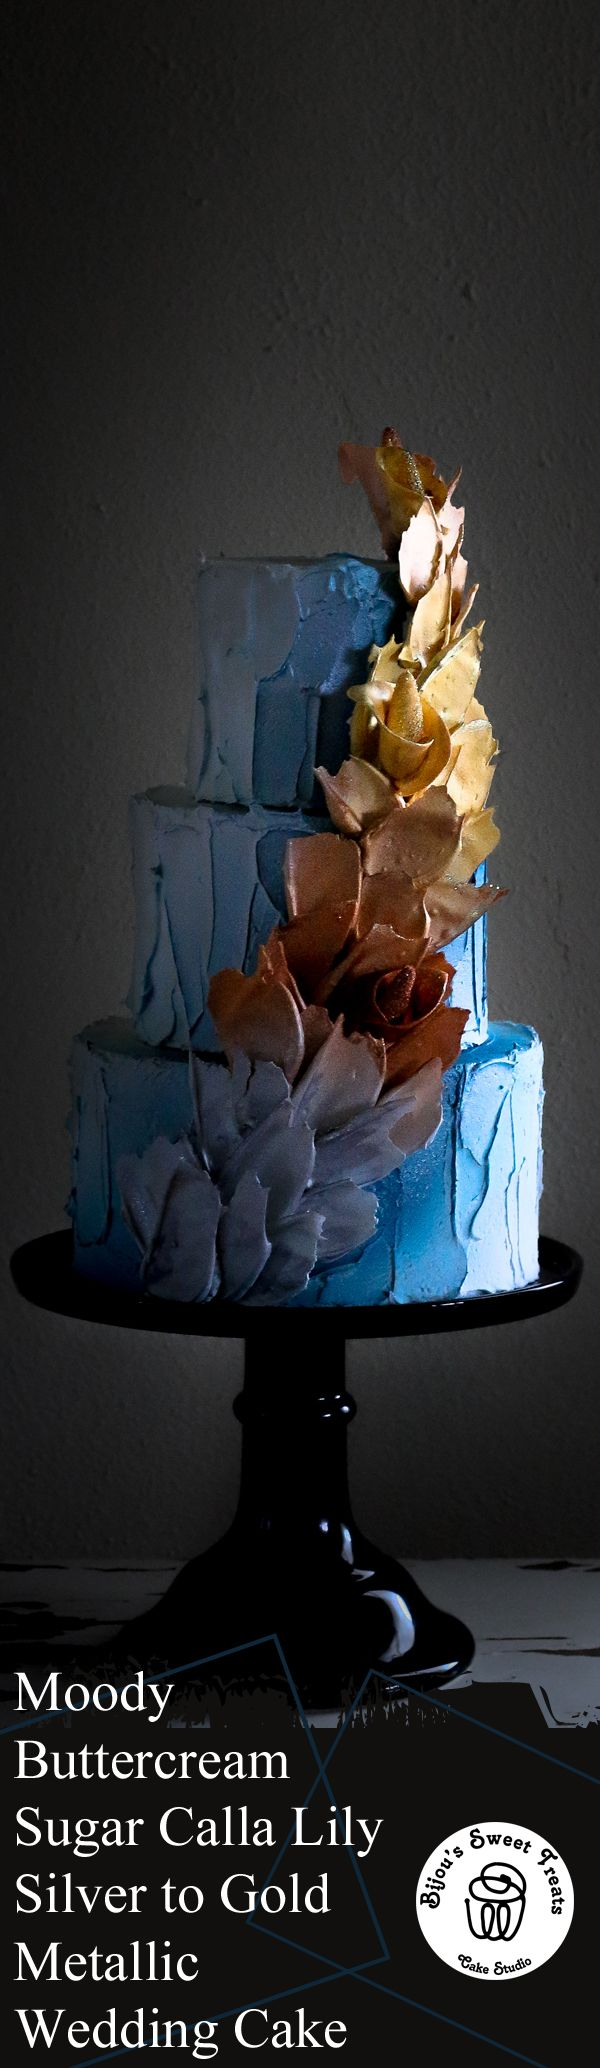 Our moody style all buttercream wedding cake with sugar calla lily mixed within a silver to gold fading metallic cascading buttercream swags. #weddings #weddingcake #buttercream